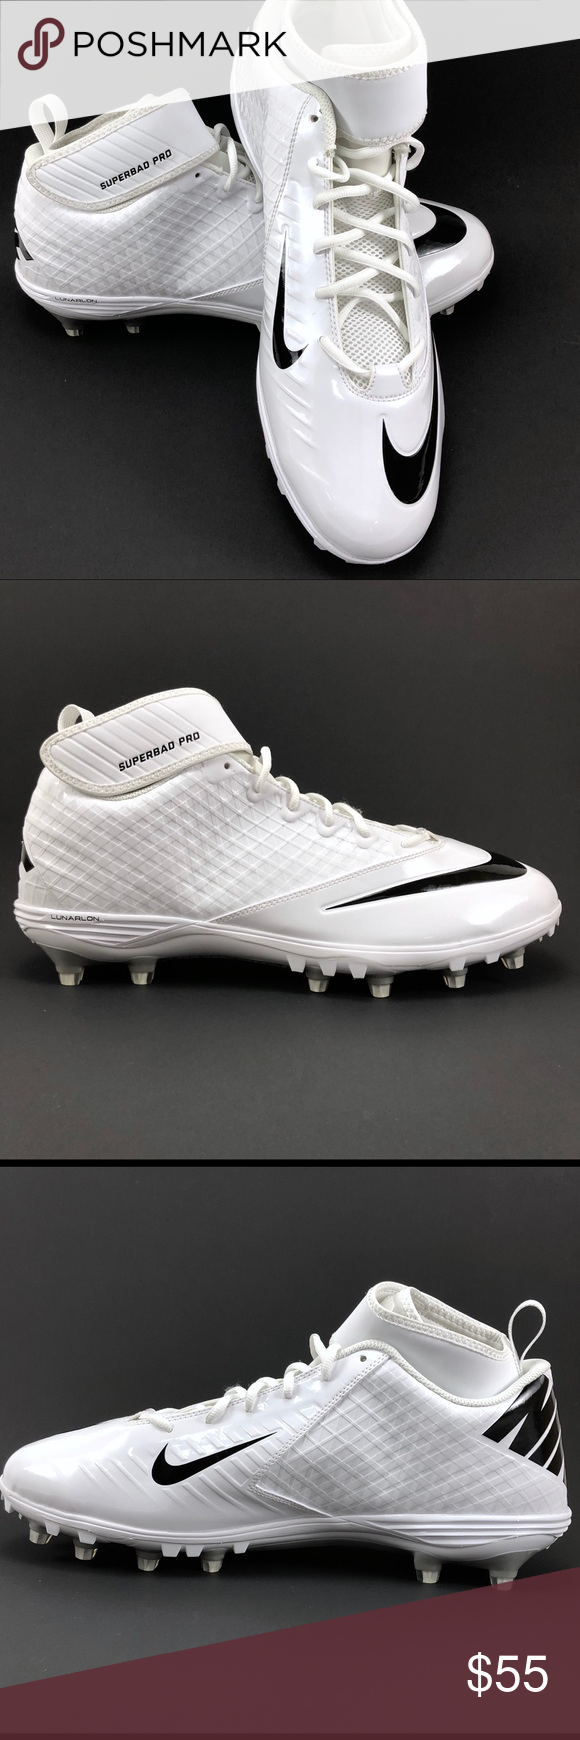 36f740ee0651 Nike Mens 17 Lunar Superbad Pro TD Football Cleats Size 17. NEW Nike Lunar  Superbad Pro TD Football Cleats White & Black 511334-101. Check out the  photos!